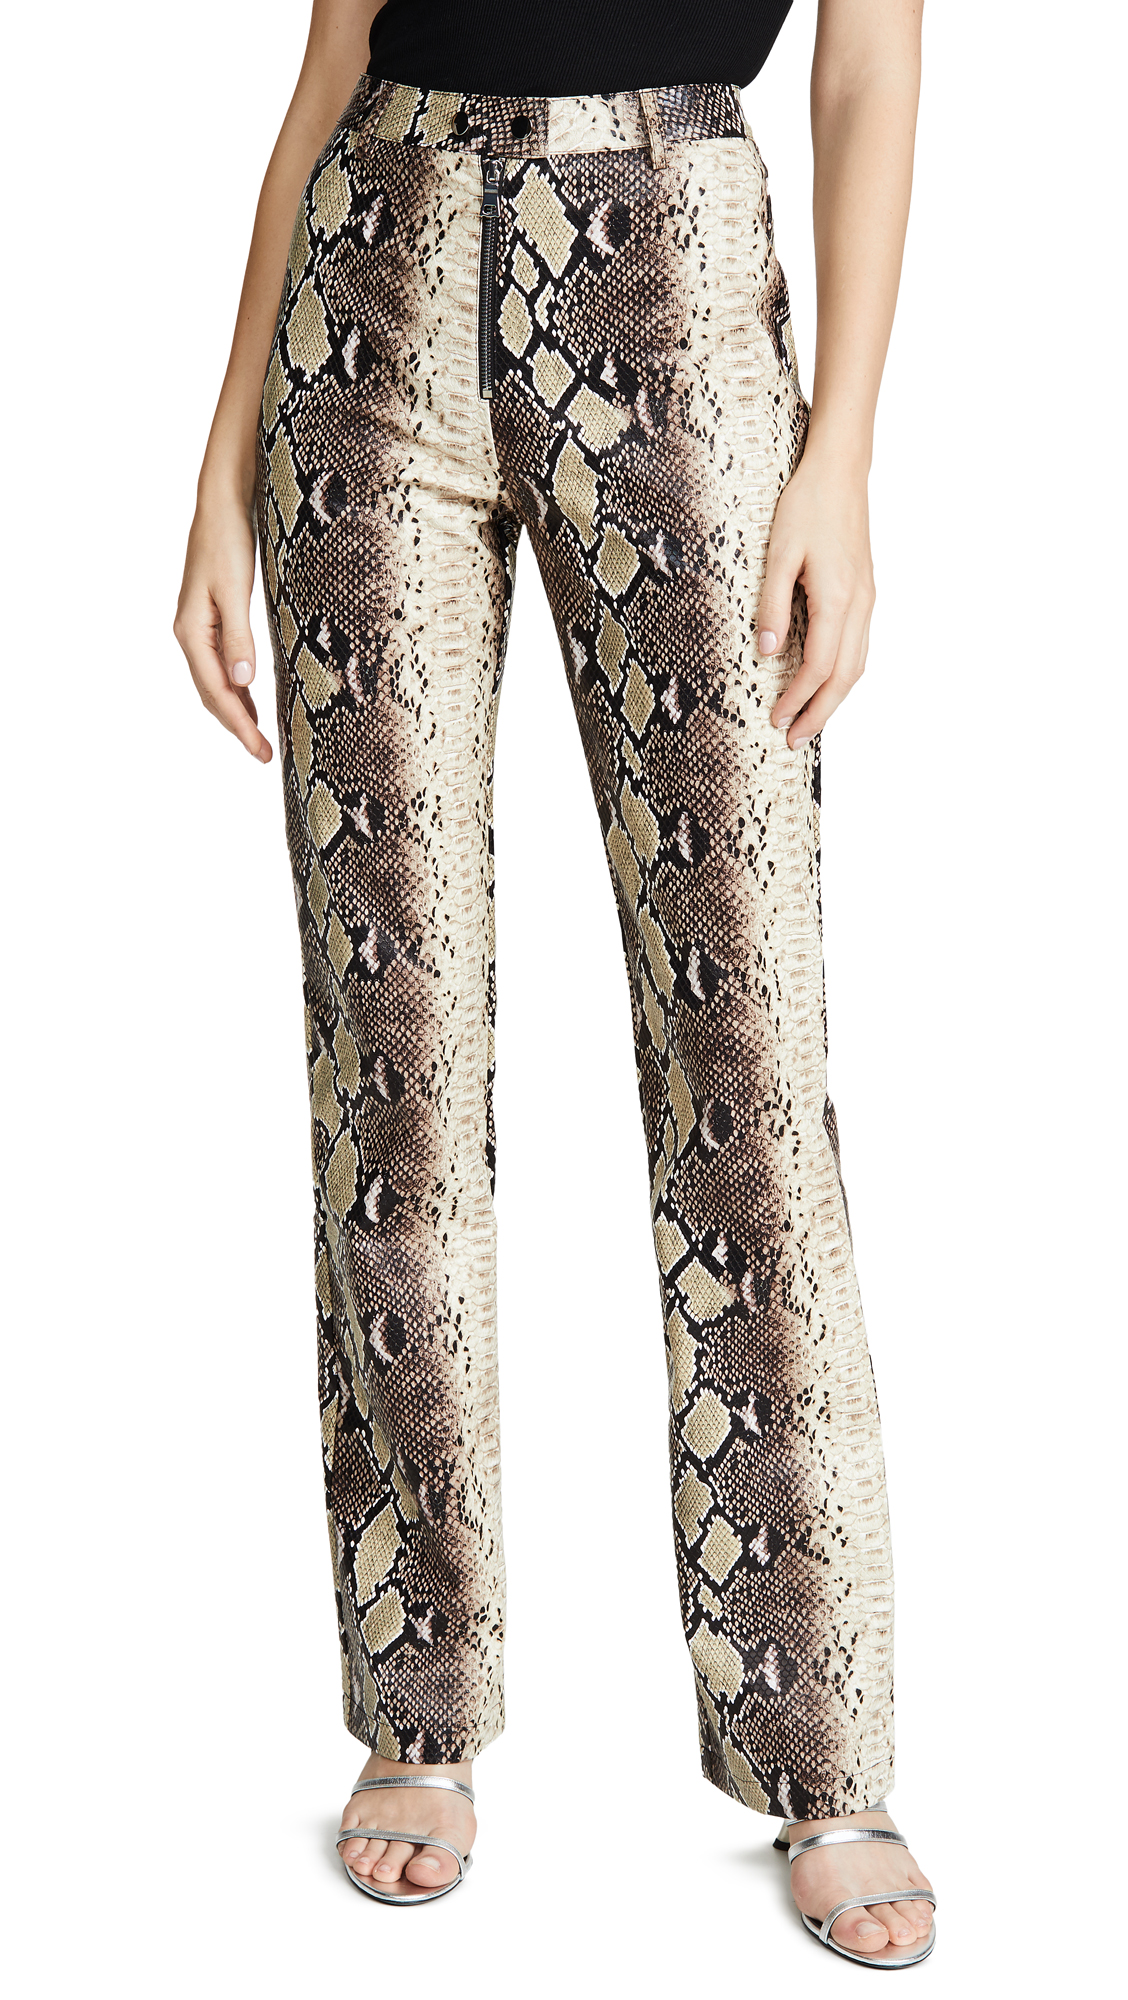 I.Am.Gia Affordable Leather Pants